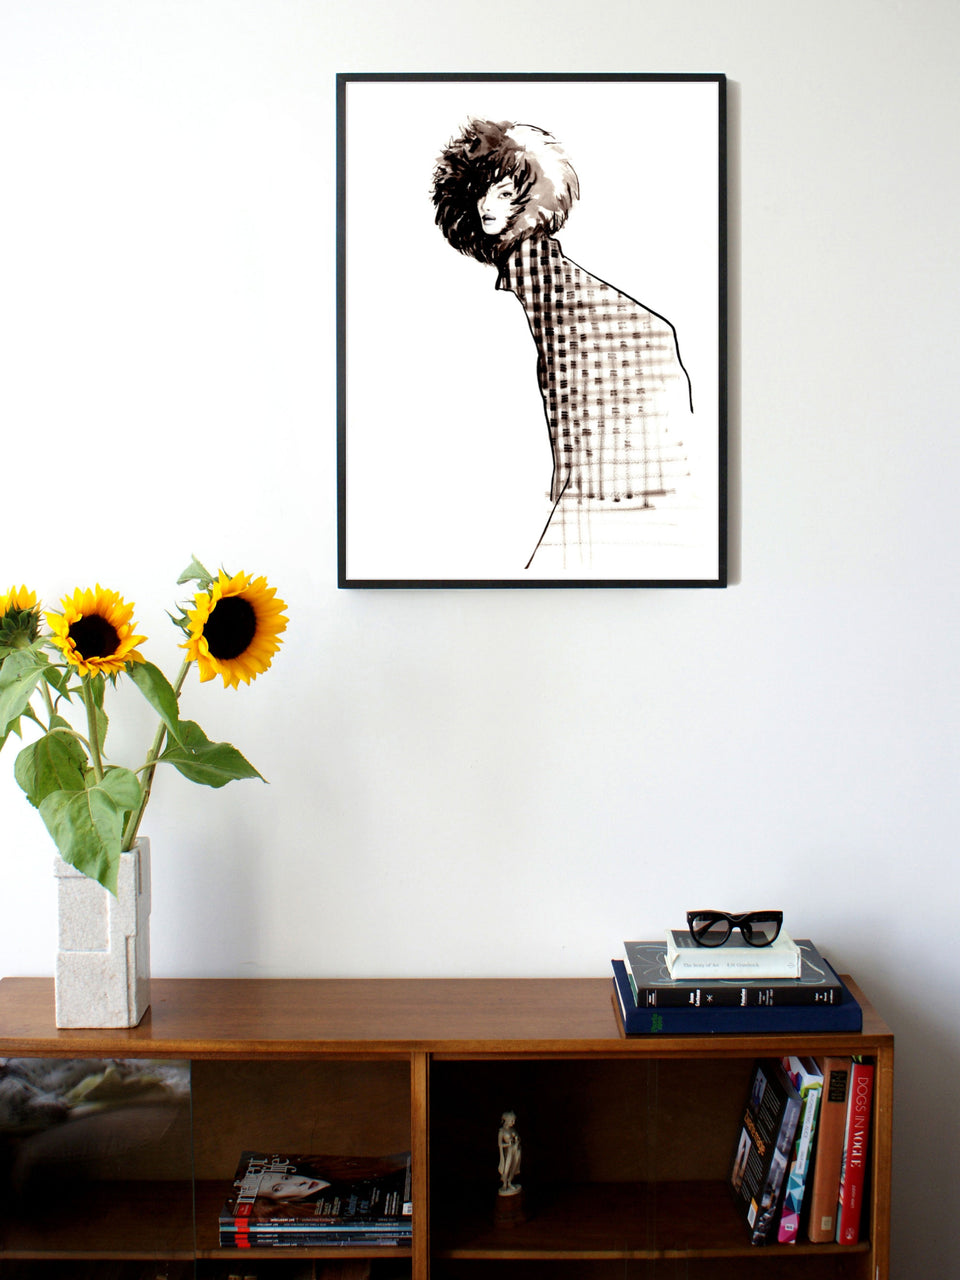 Fashion illustration print of Fur Hat by Sjoukje Bierma - woman in check coat and fur hat - 60 x 80 cm framed